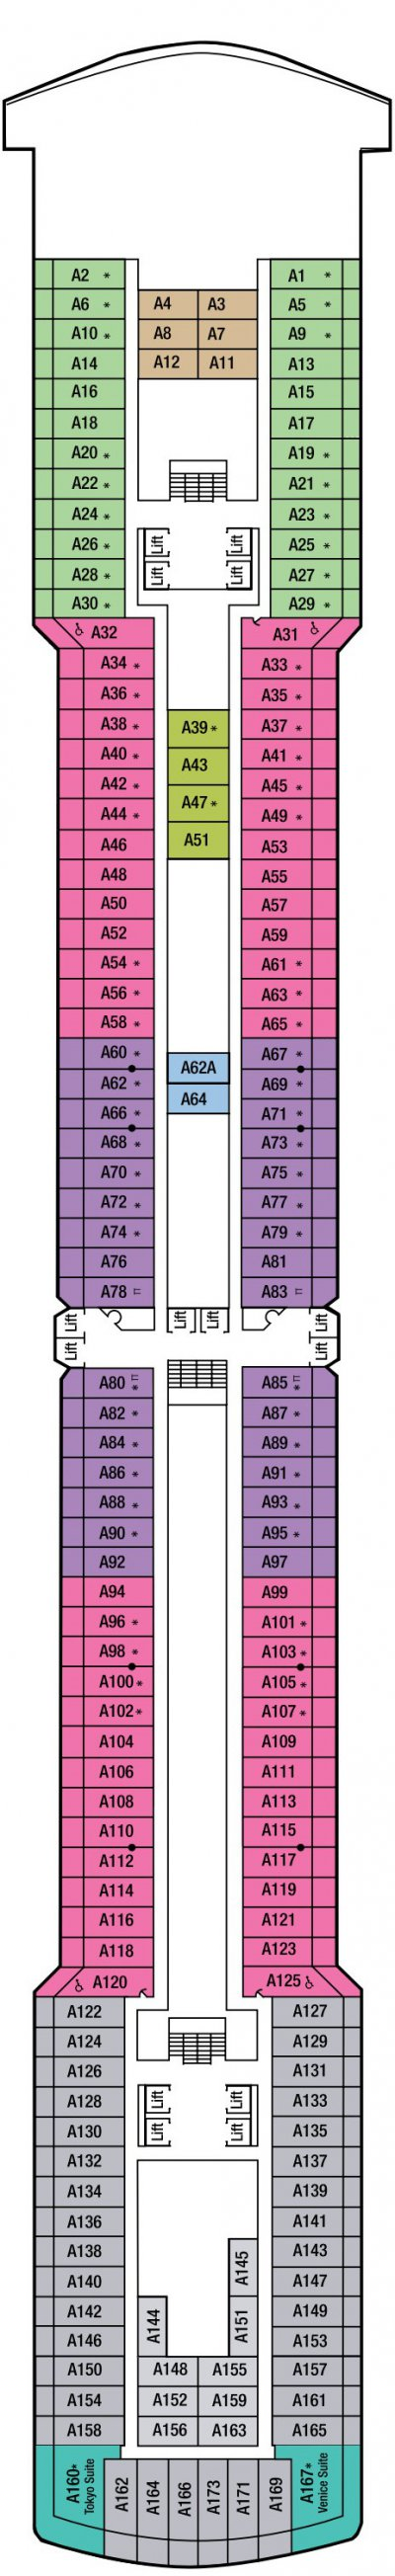 Arcadia A Deck layout